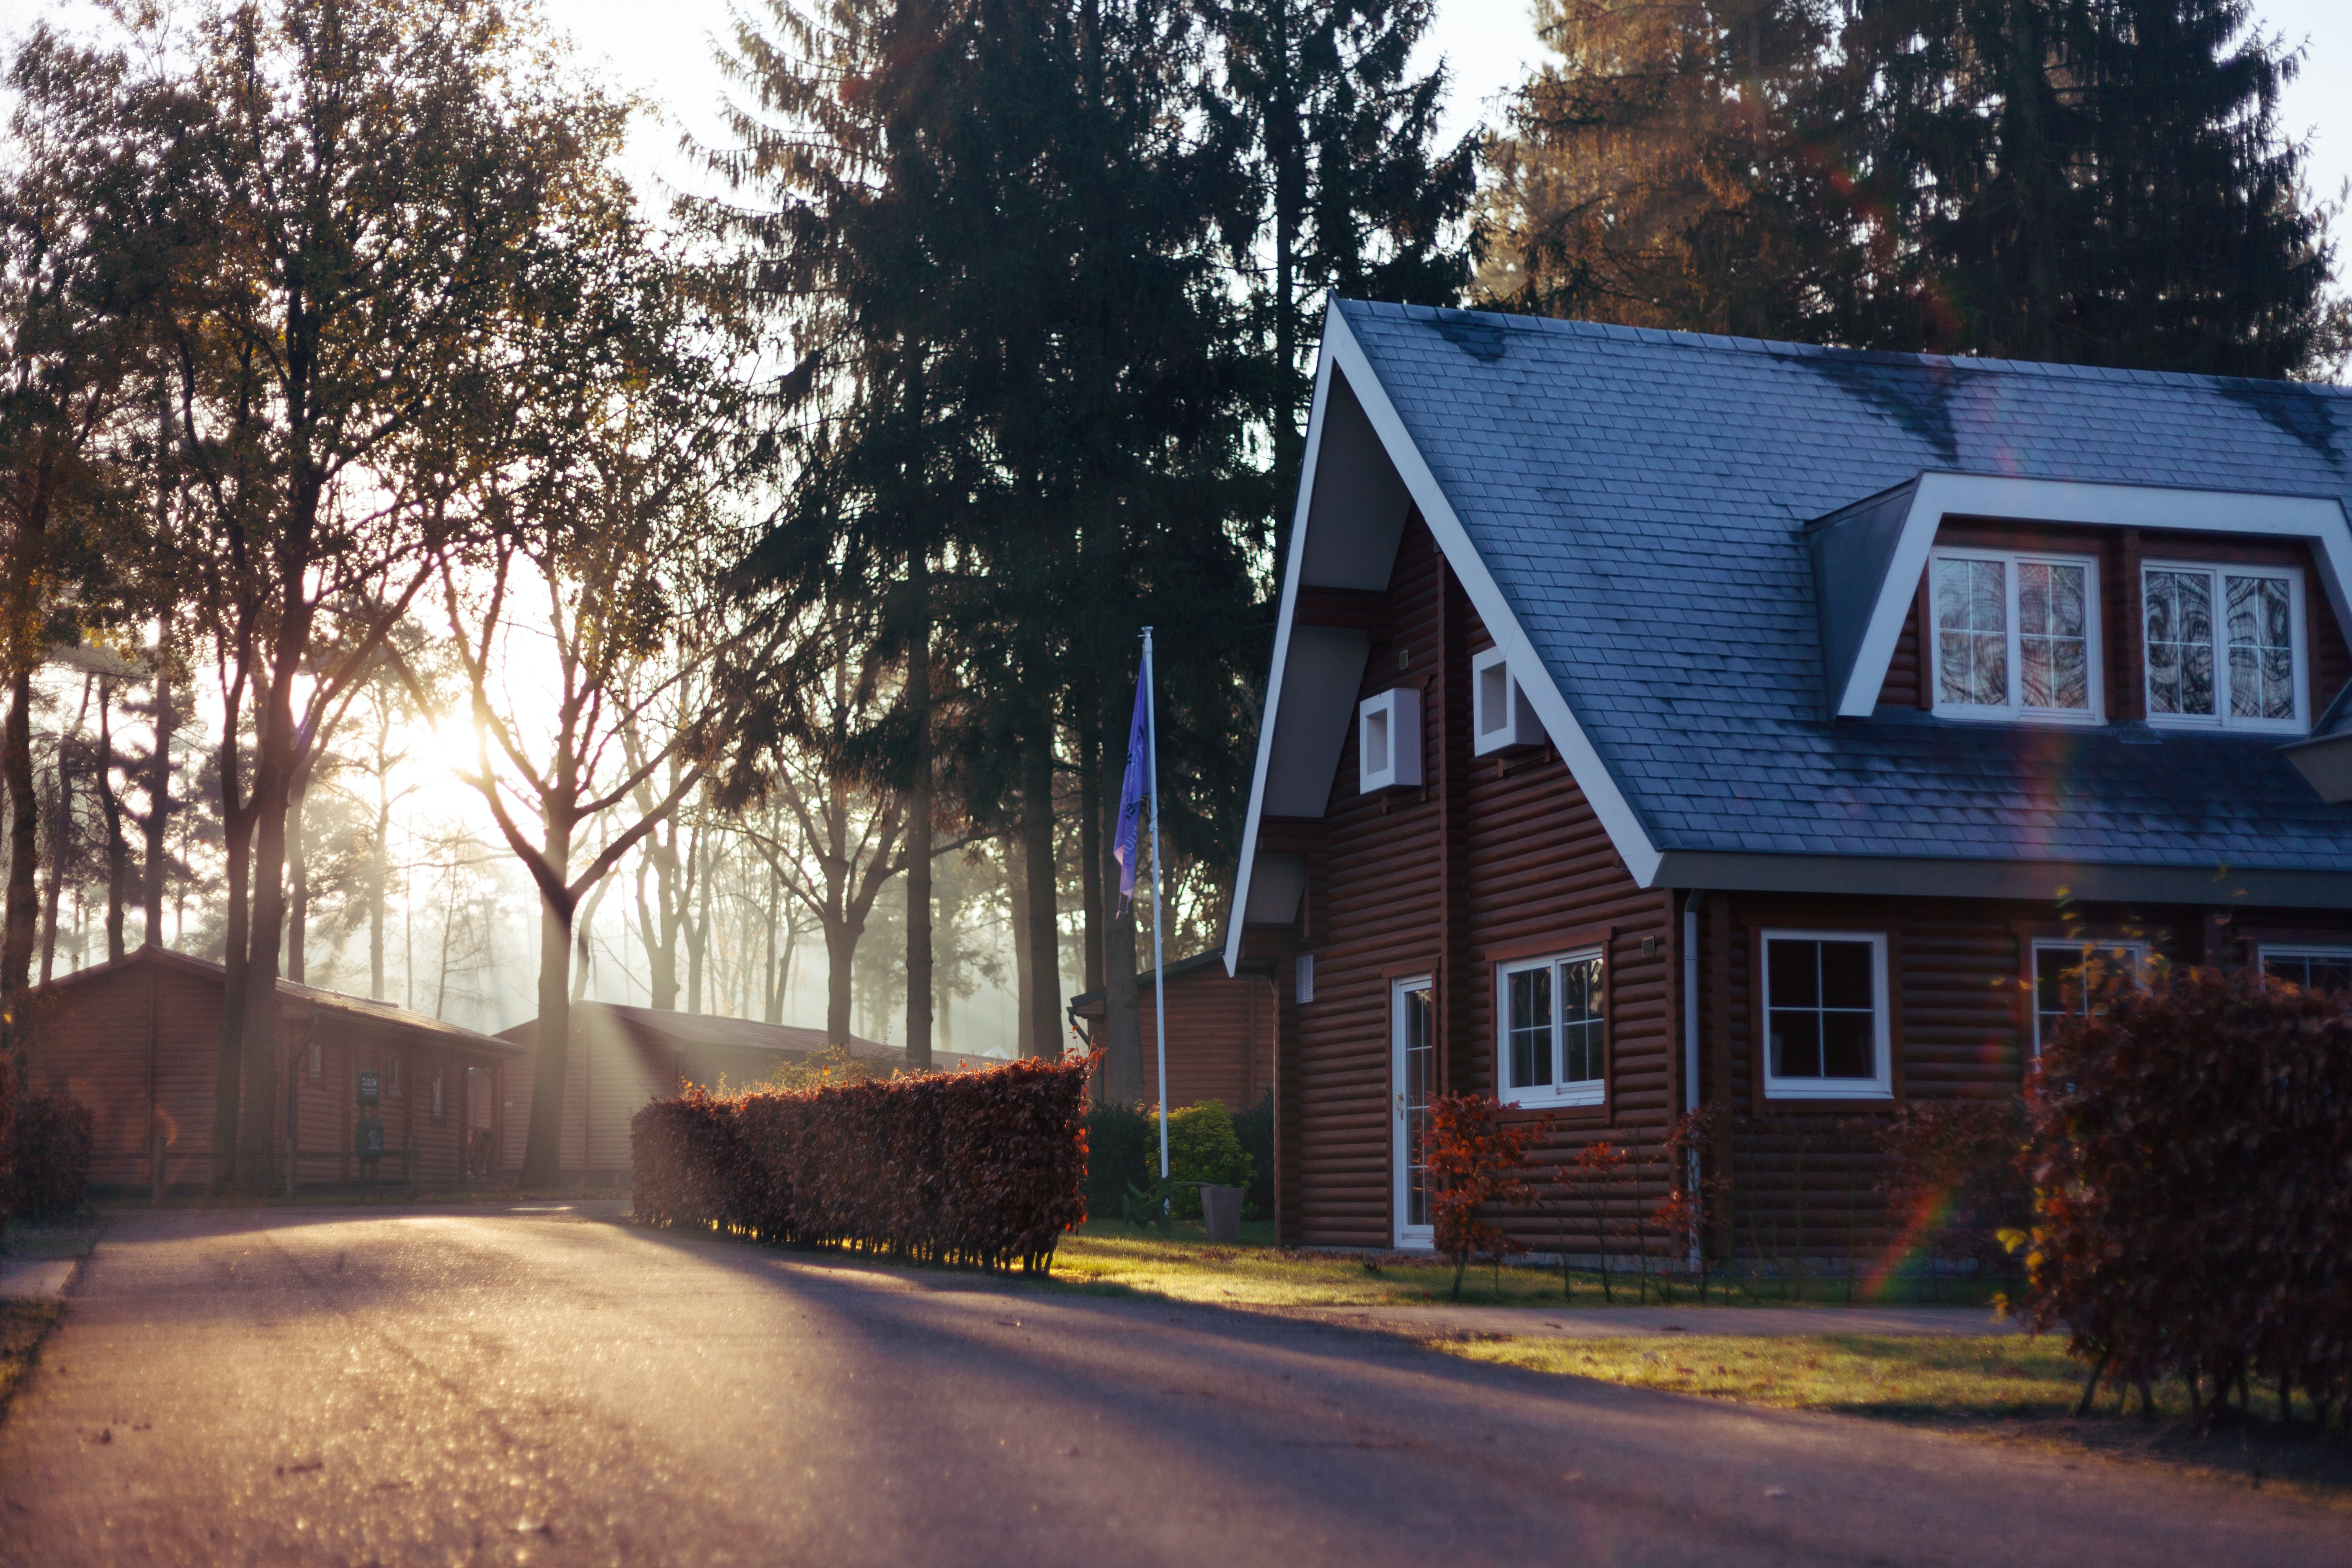 Brown house with blue roof in front of trees with rays of the setting sun streaming through them